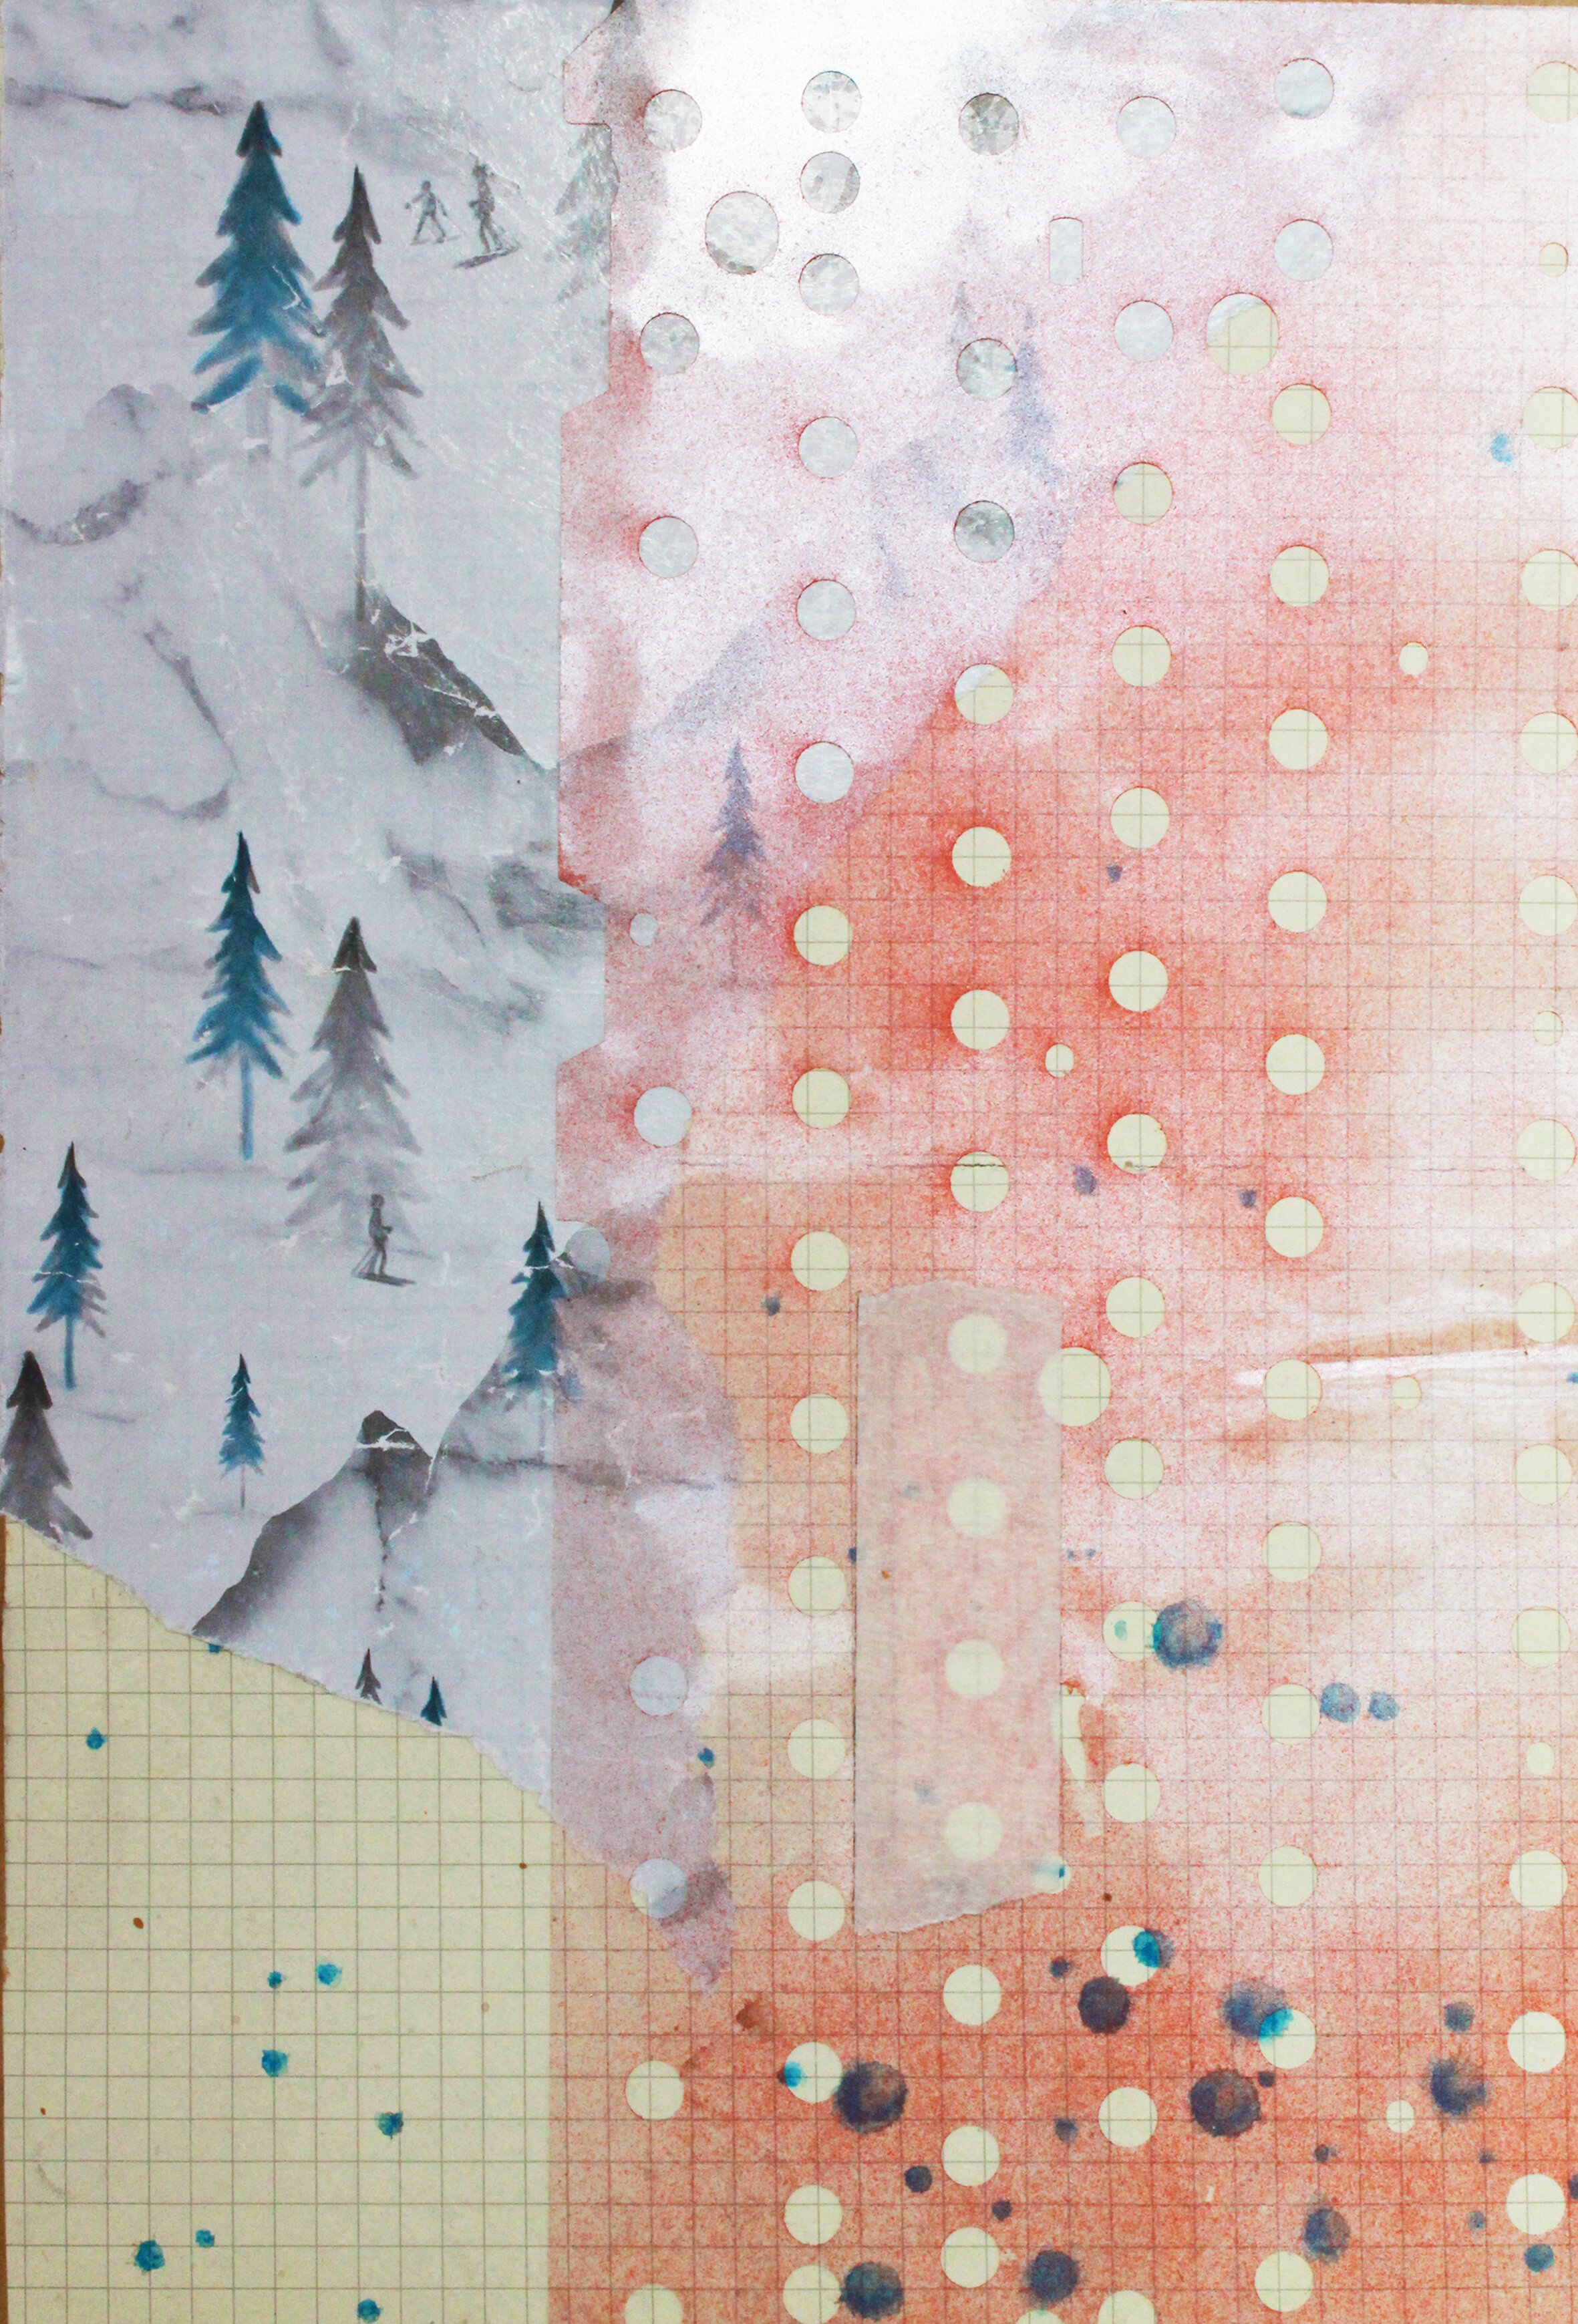 Cévennes collage #1 2019 Printed paper, acetate and masking tape on paper, 245 x 200mm